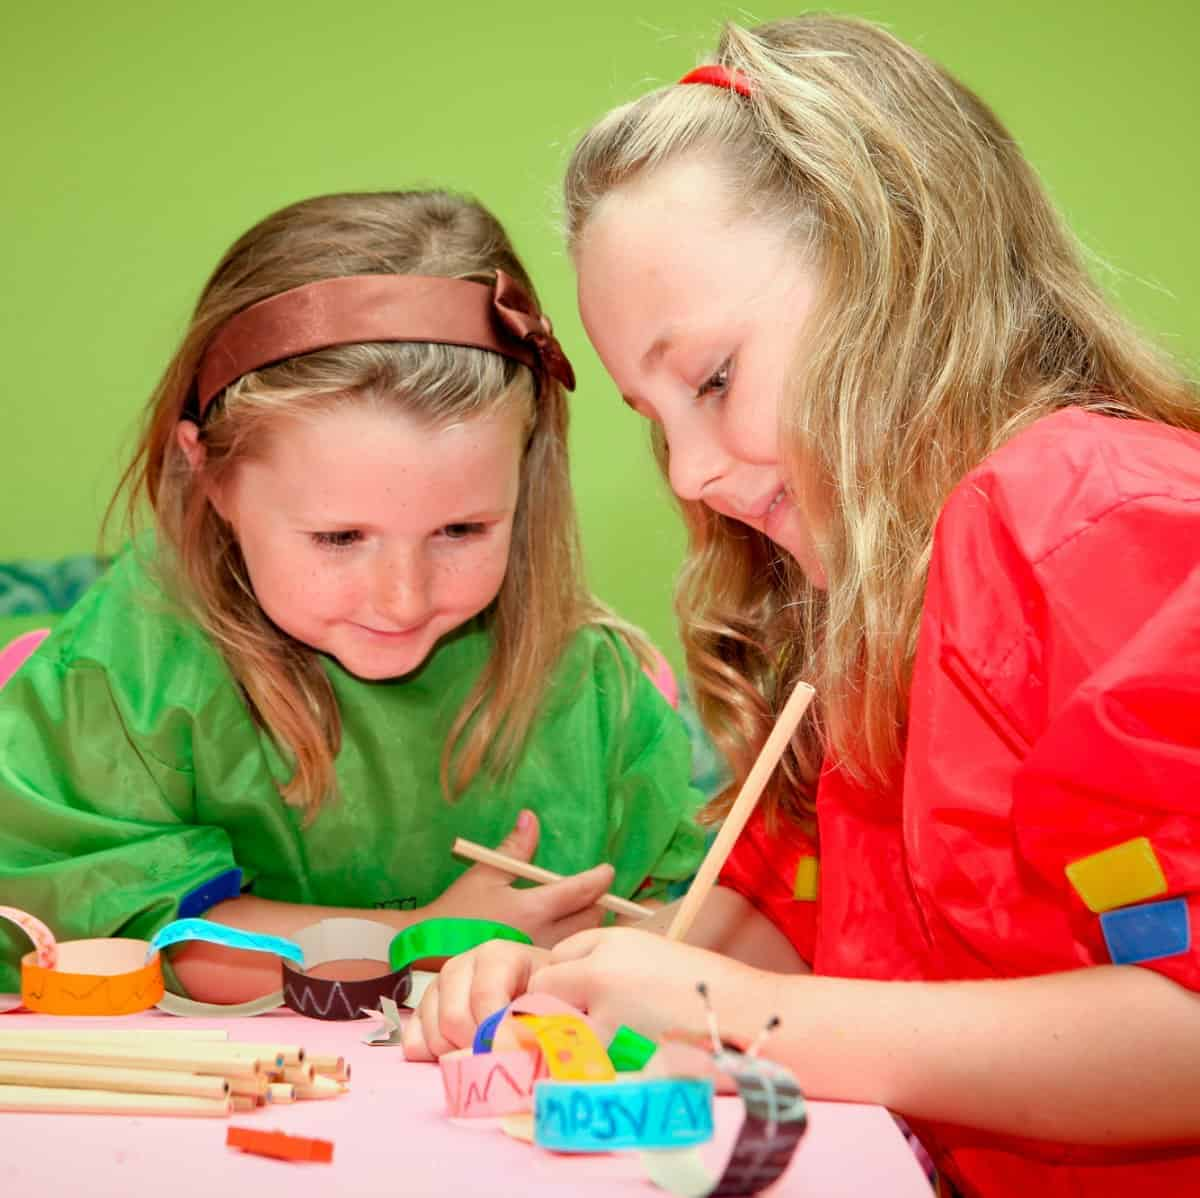 2 little girls with smocks on doing arts and crafts at the table